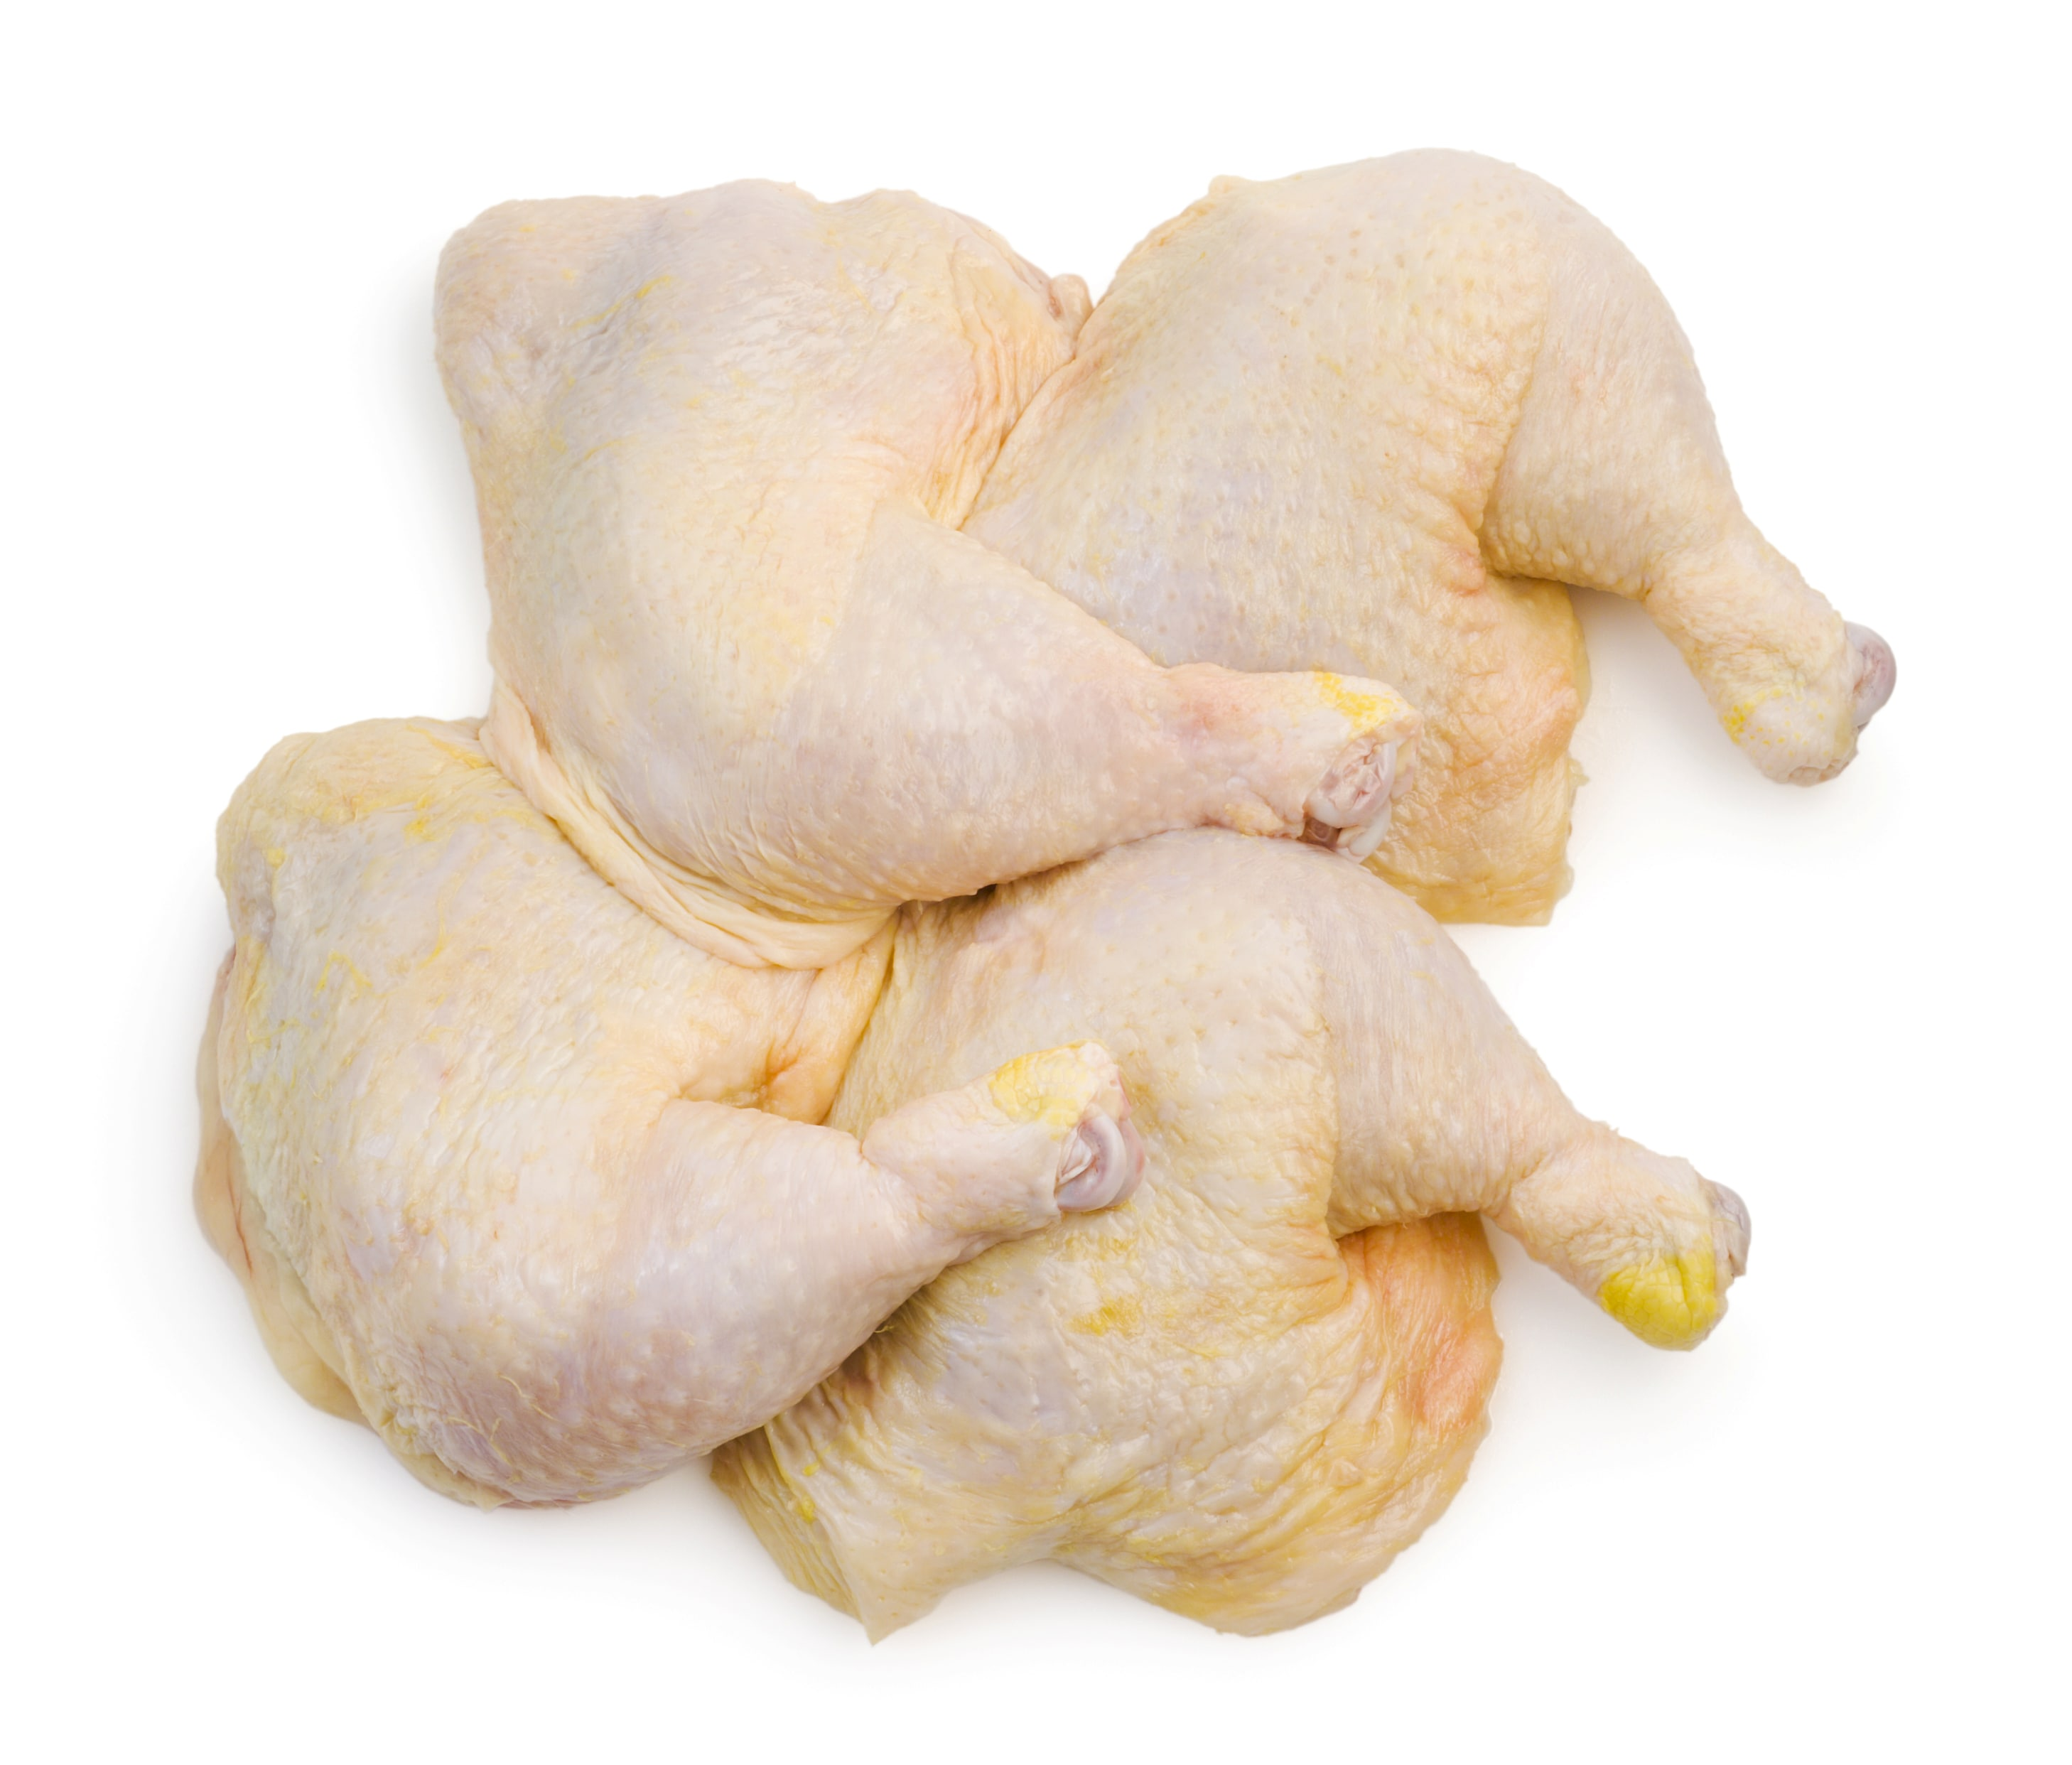 Wise Organic Pastures Kosher Whole Chicken Leg Quarters